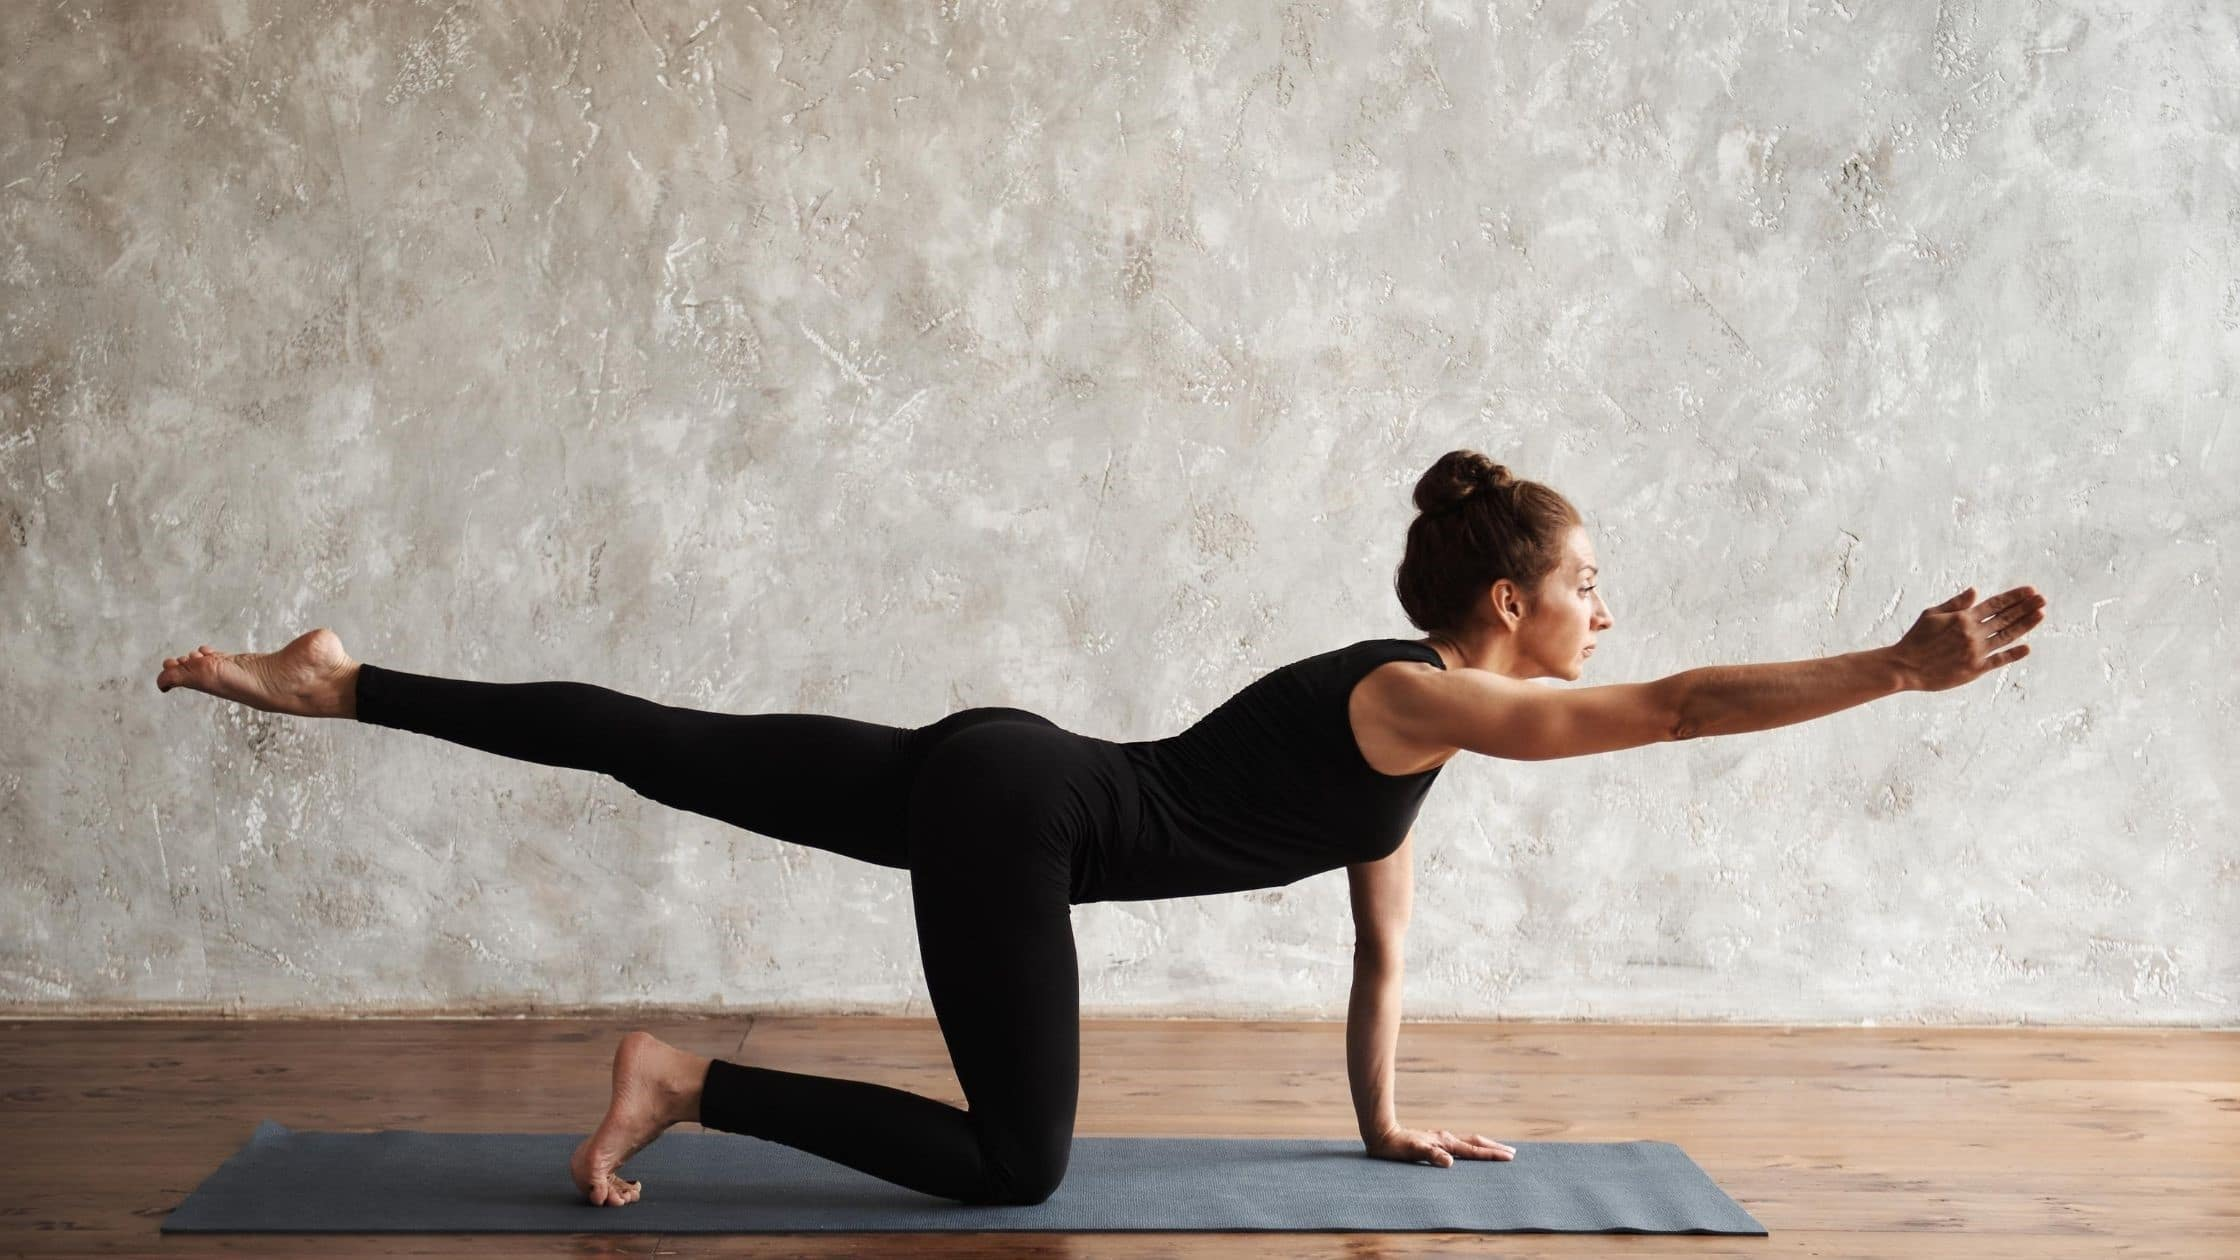 woman in black exercise outfit doing yoga